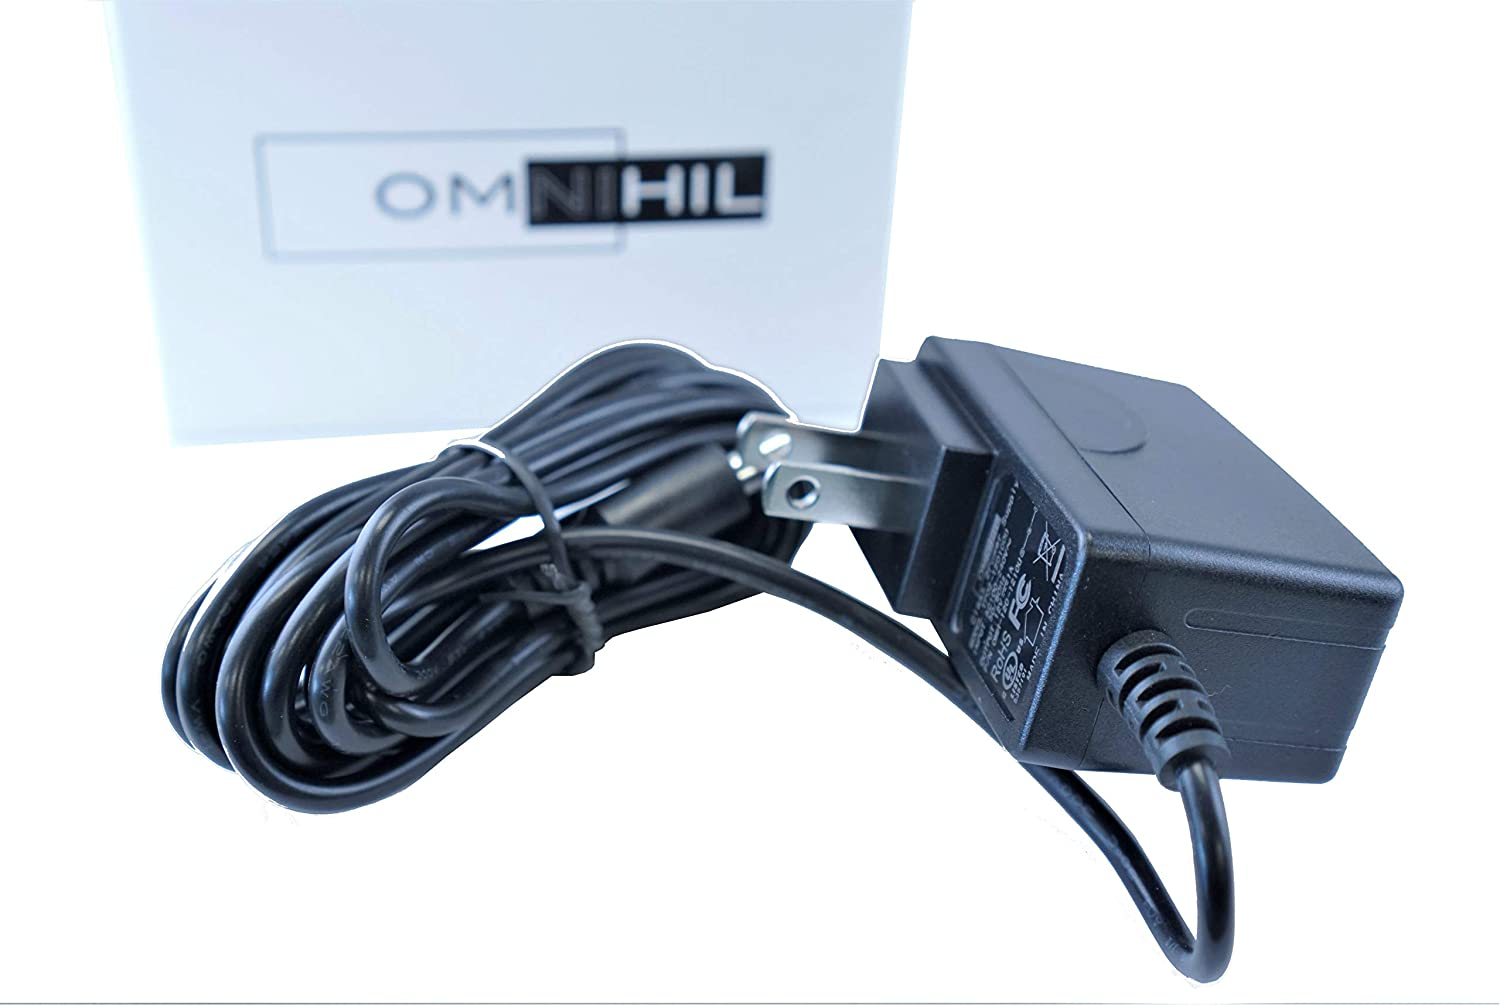 [UL Listed] OMNIHIL 8 Feet Long AC/DC Adapter Compatible with Roland MC-303 groovebox Drum Machine Sequencer